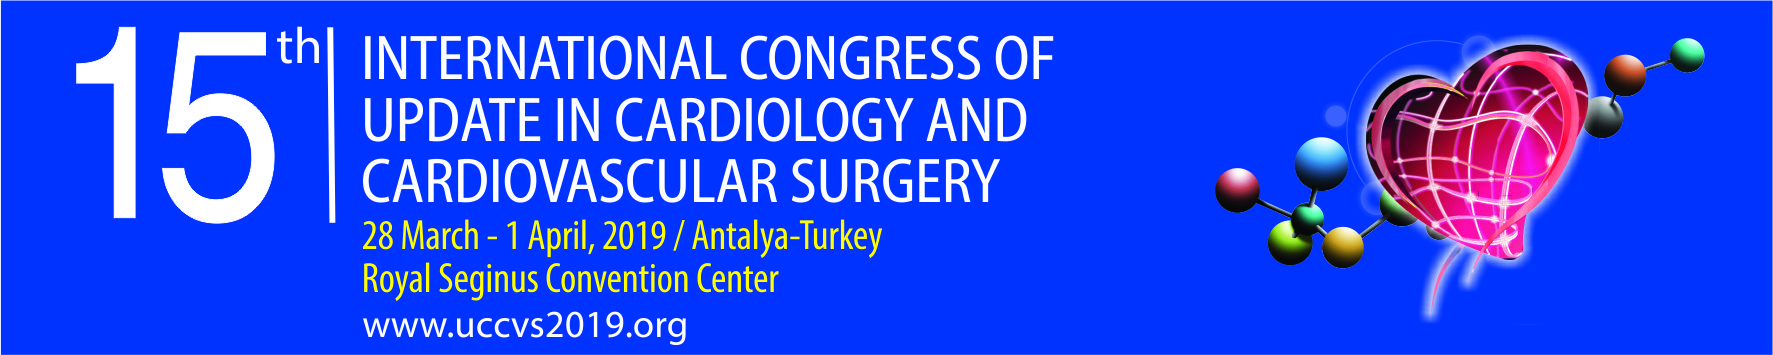 international congress of update in cardiology and cardiovascular surgery